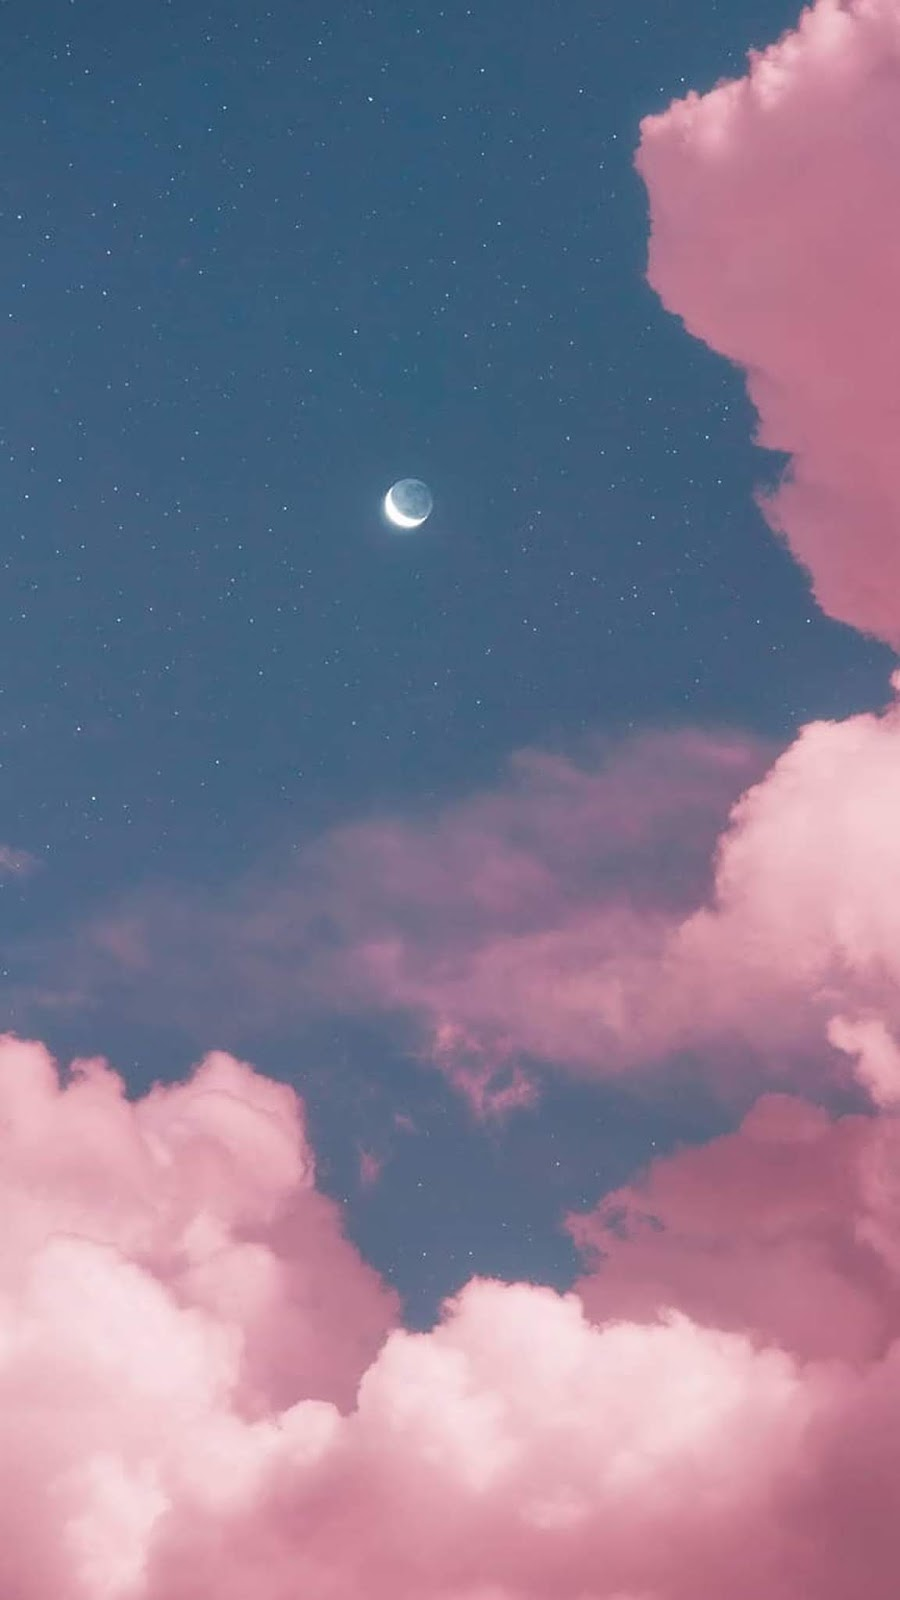 Two moon in the pink sky by @matialonsor